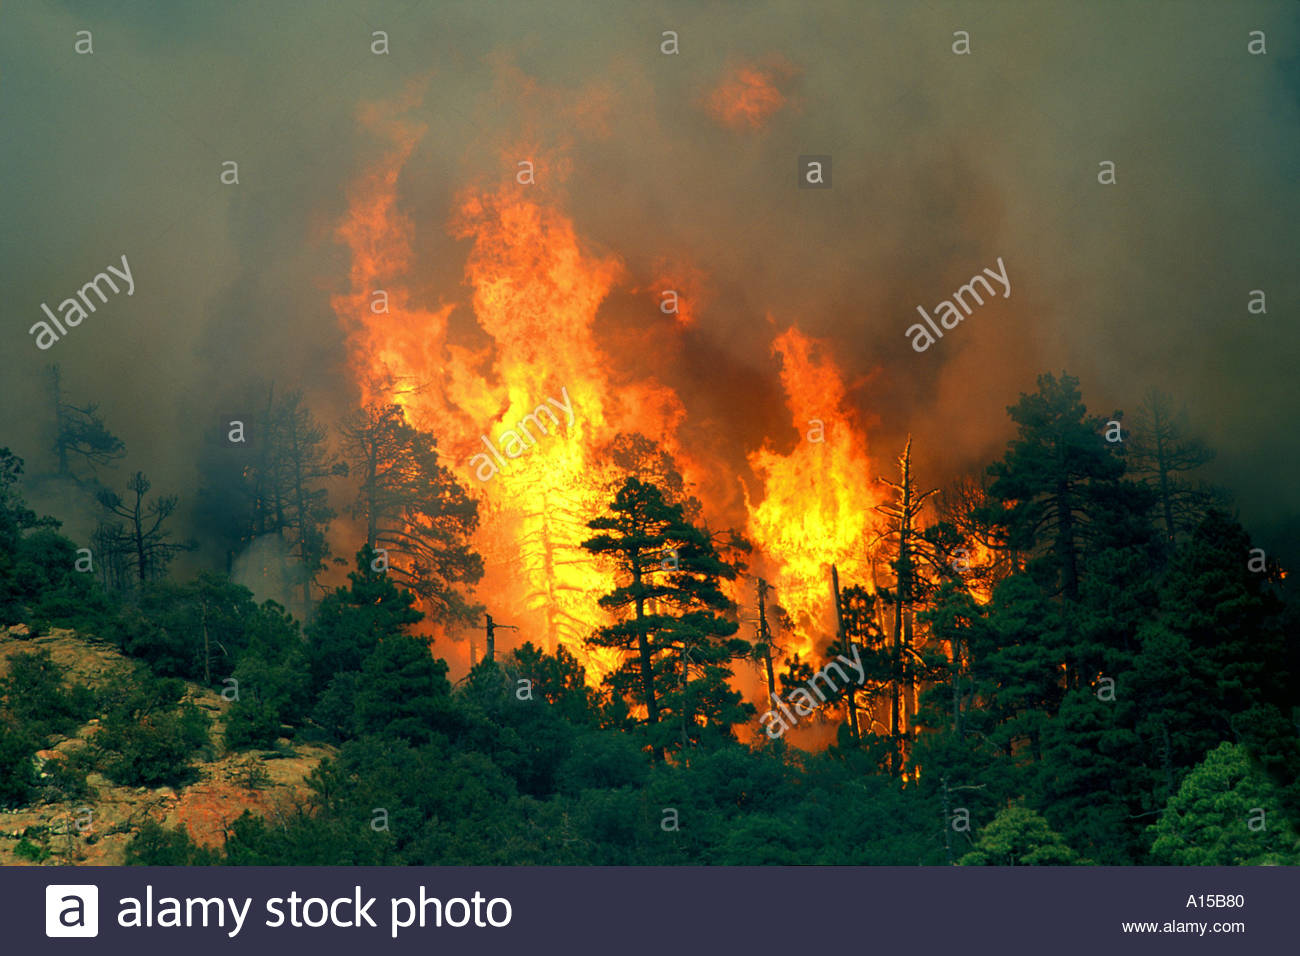 Crown fire firestorm, forest reaches flash point on Green  Mountain North of Tucson Arizona Stock Photo